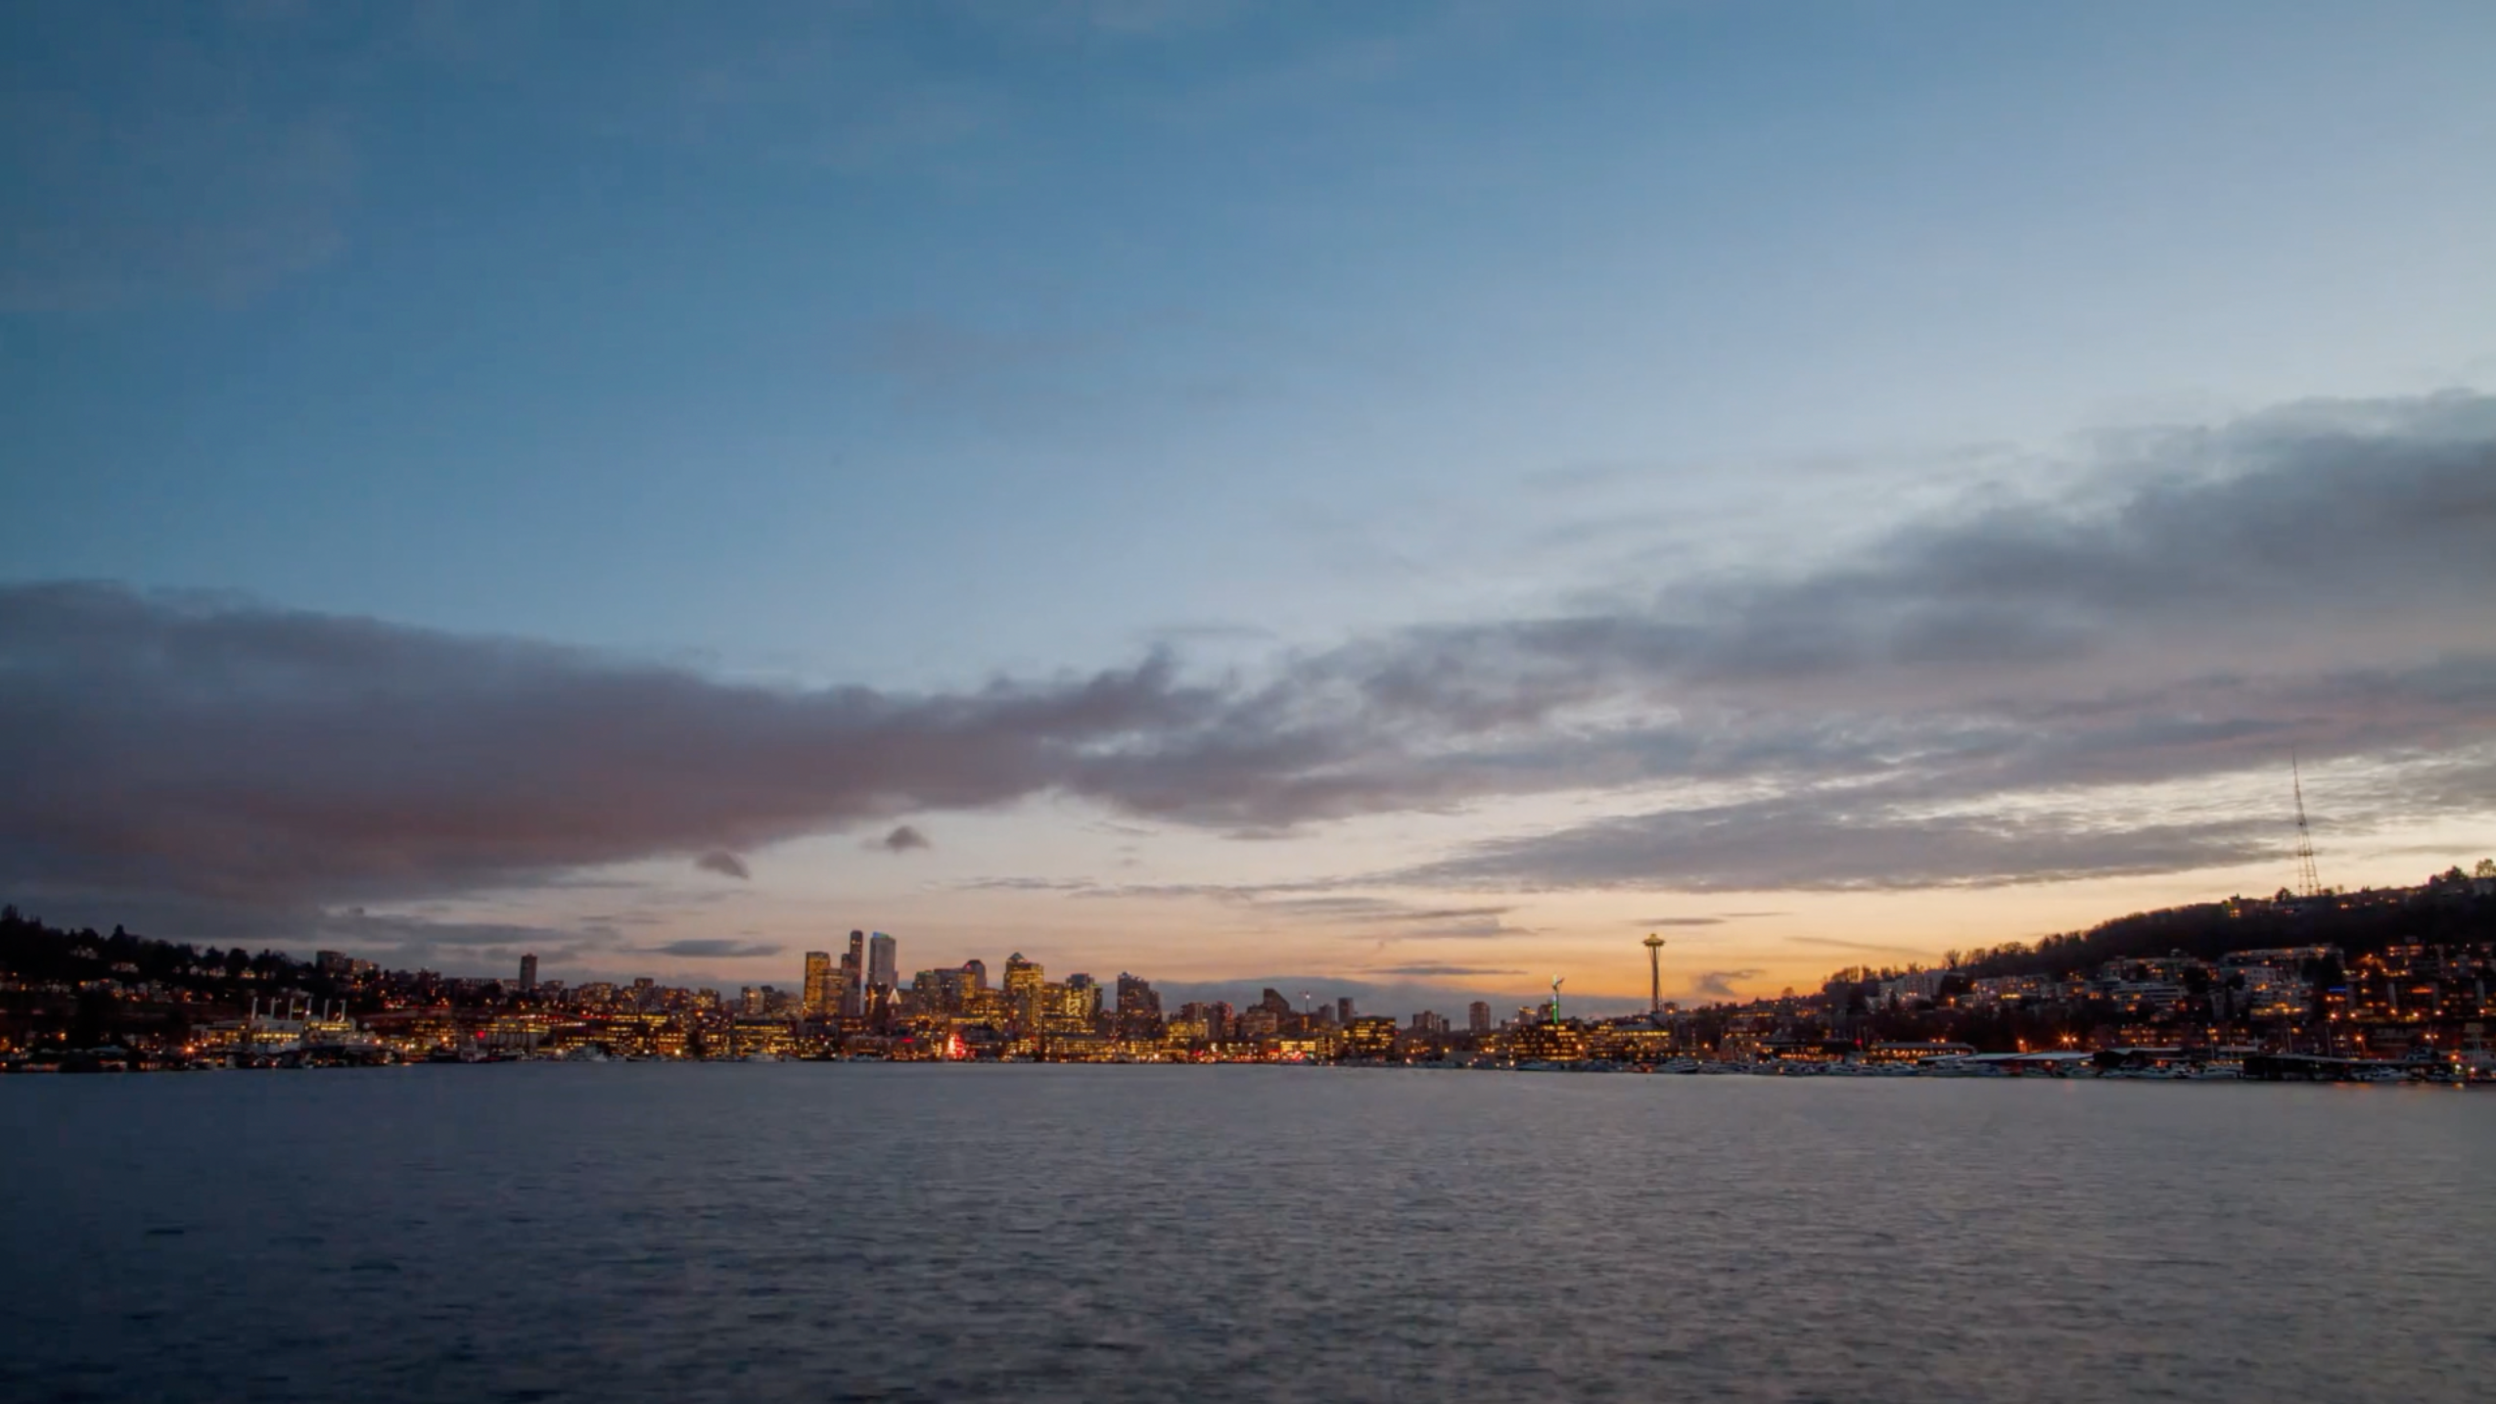 - Seattle, Washington